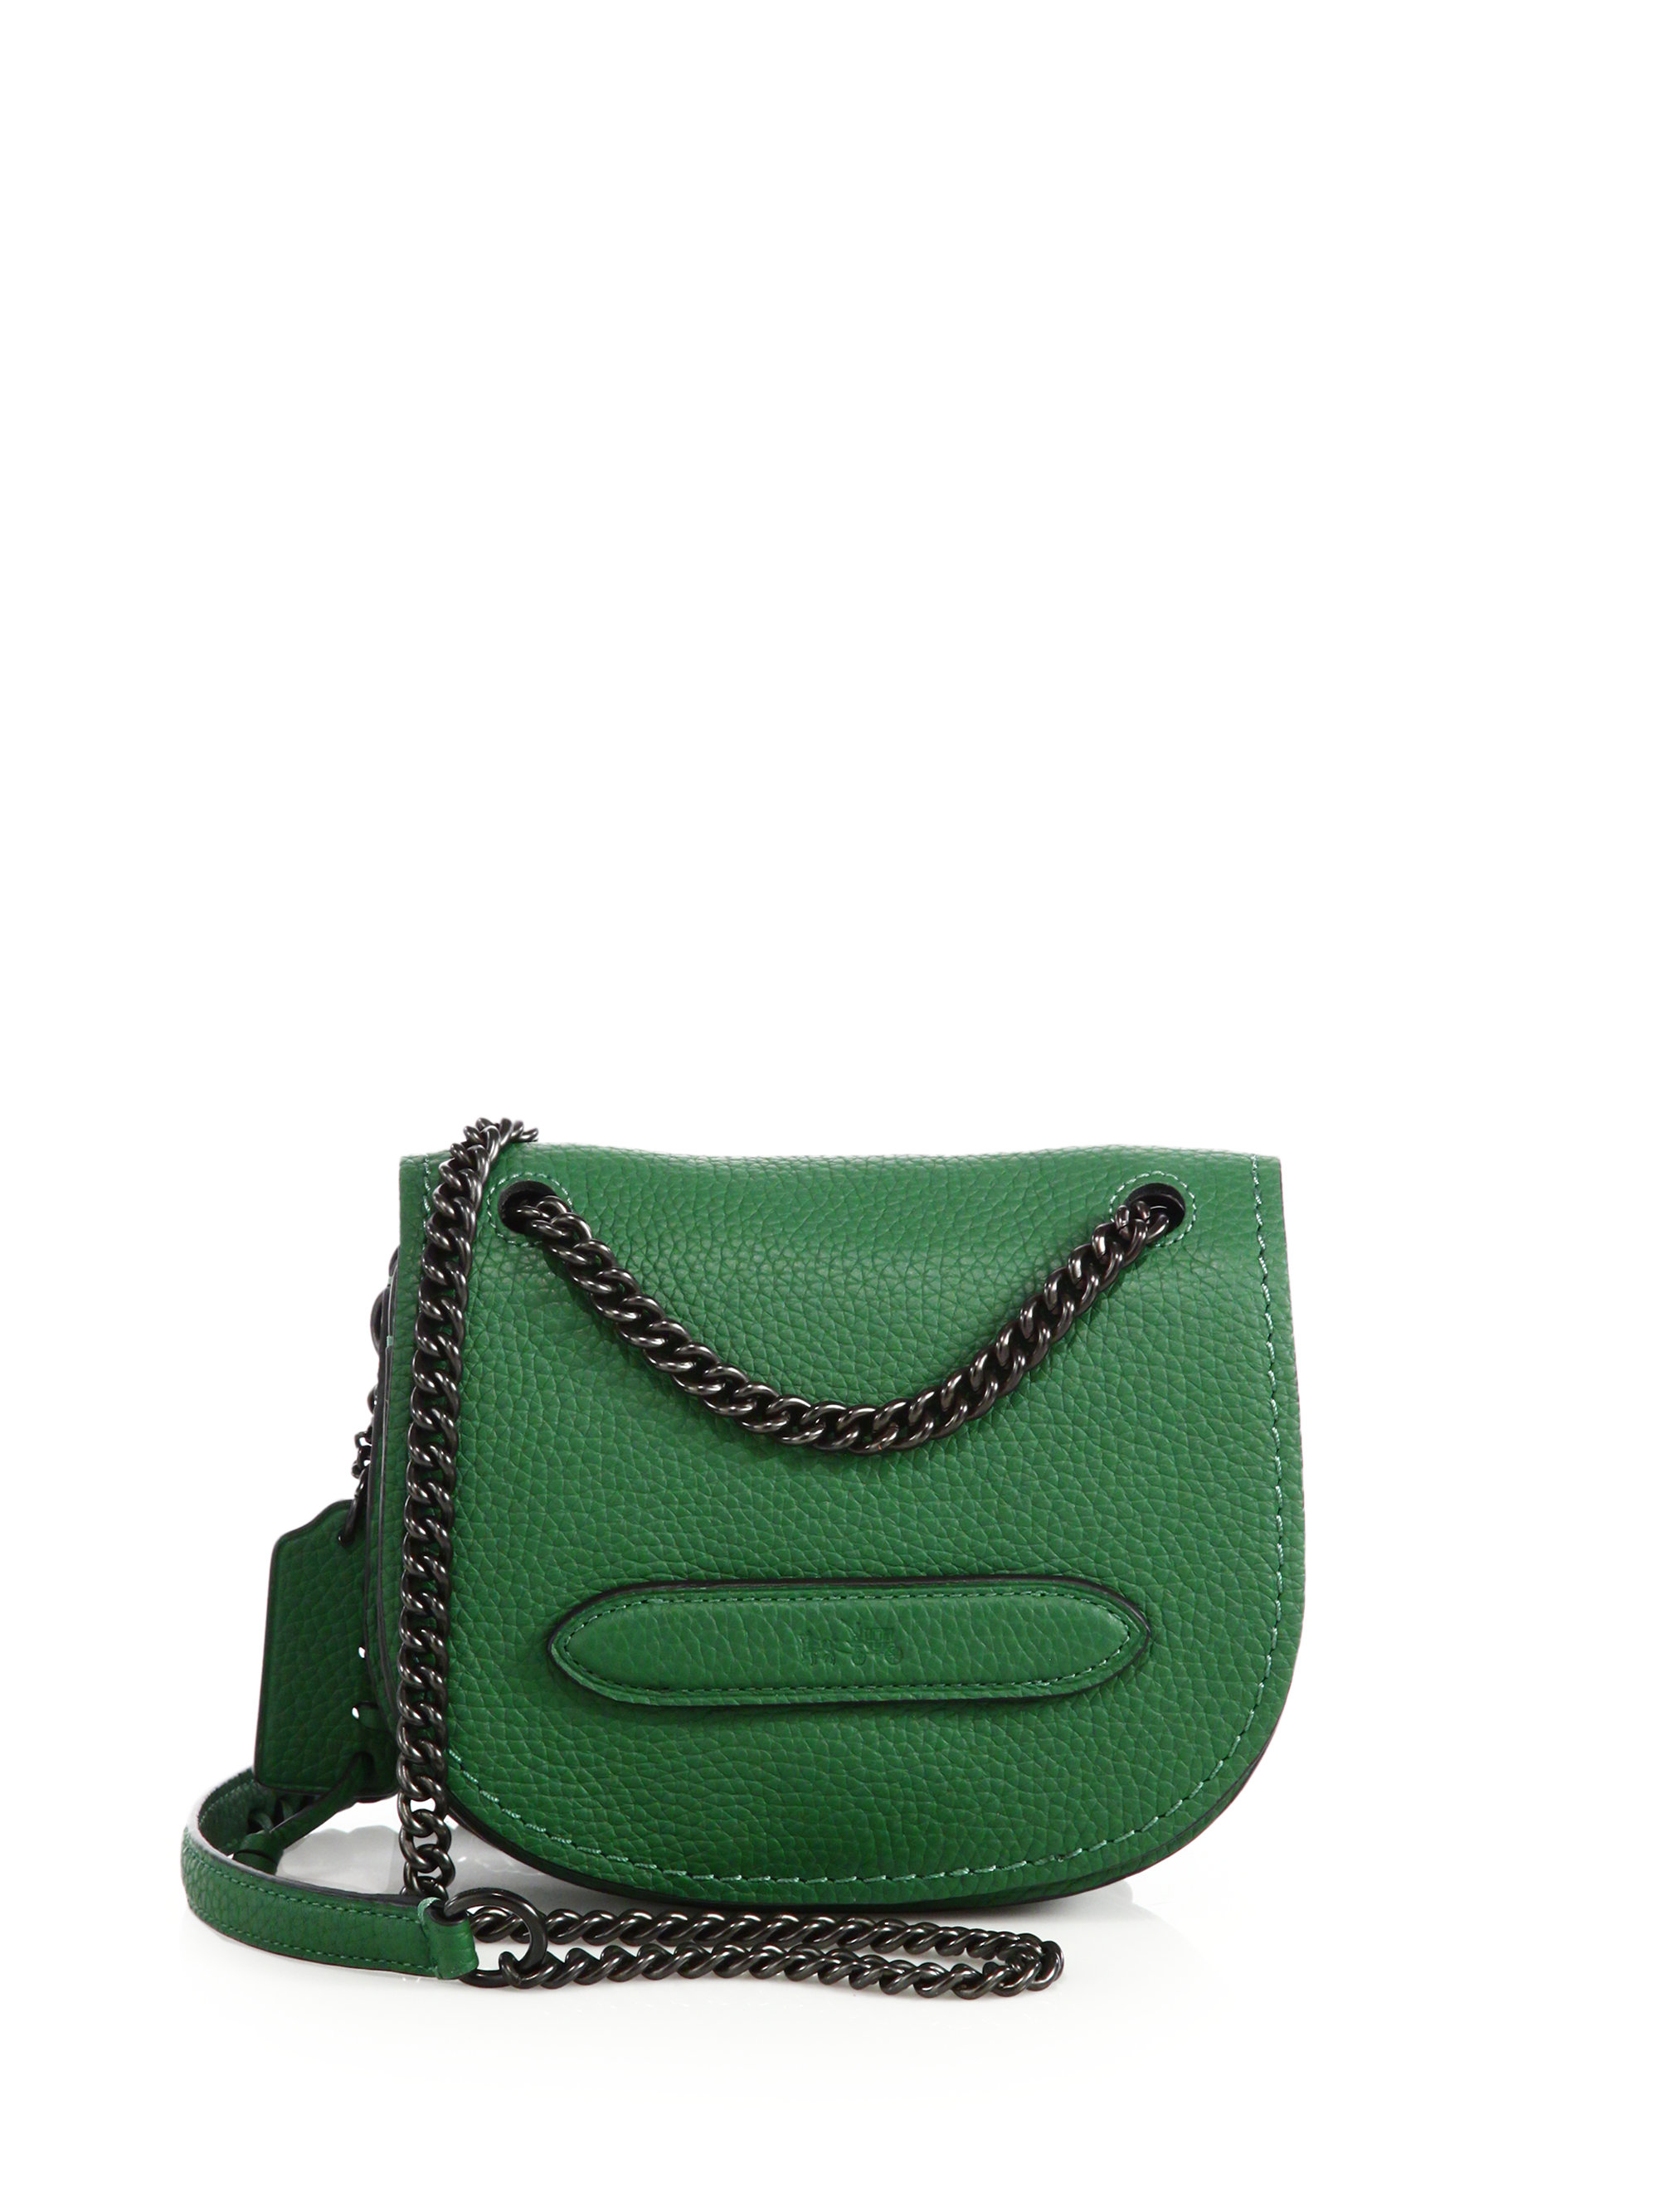 9d9962666a ... official lyst coach pebbled leather small shadow crossbody bag in green  678a2 1de3a